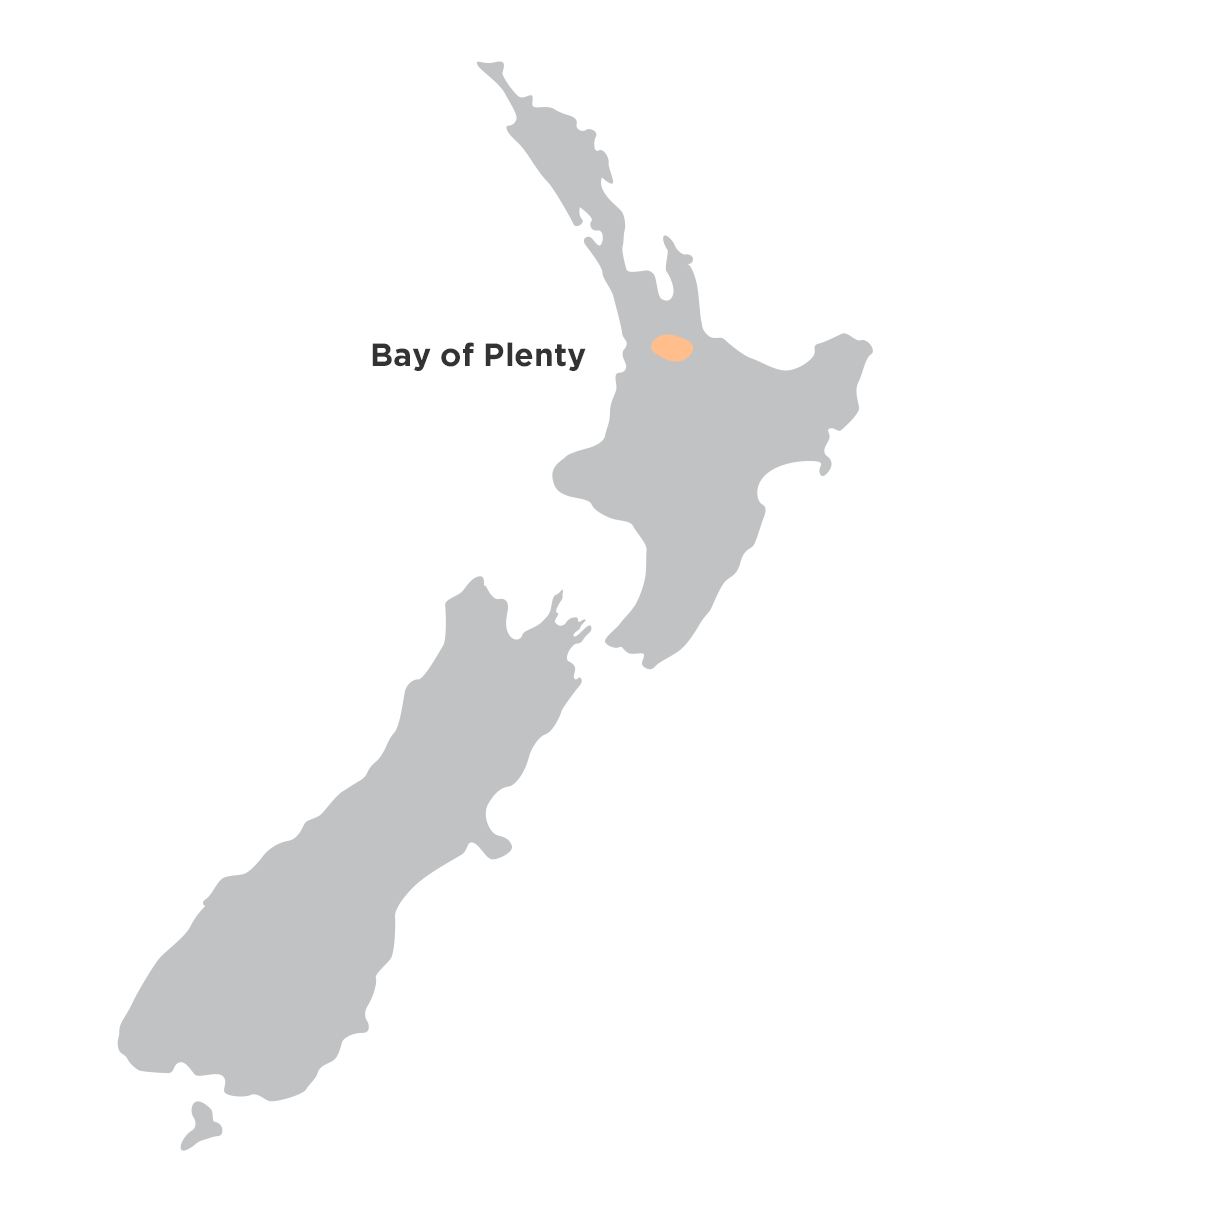 Waikato/Bay Of Plenty